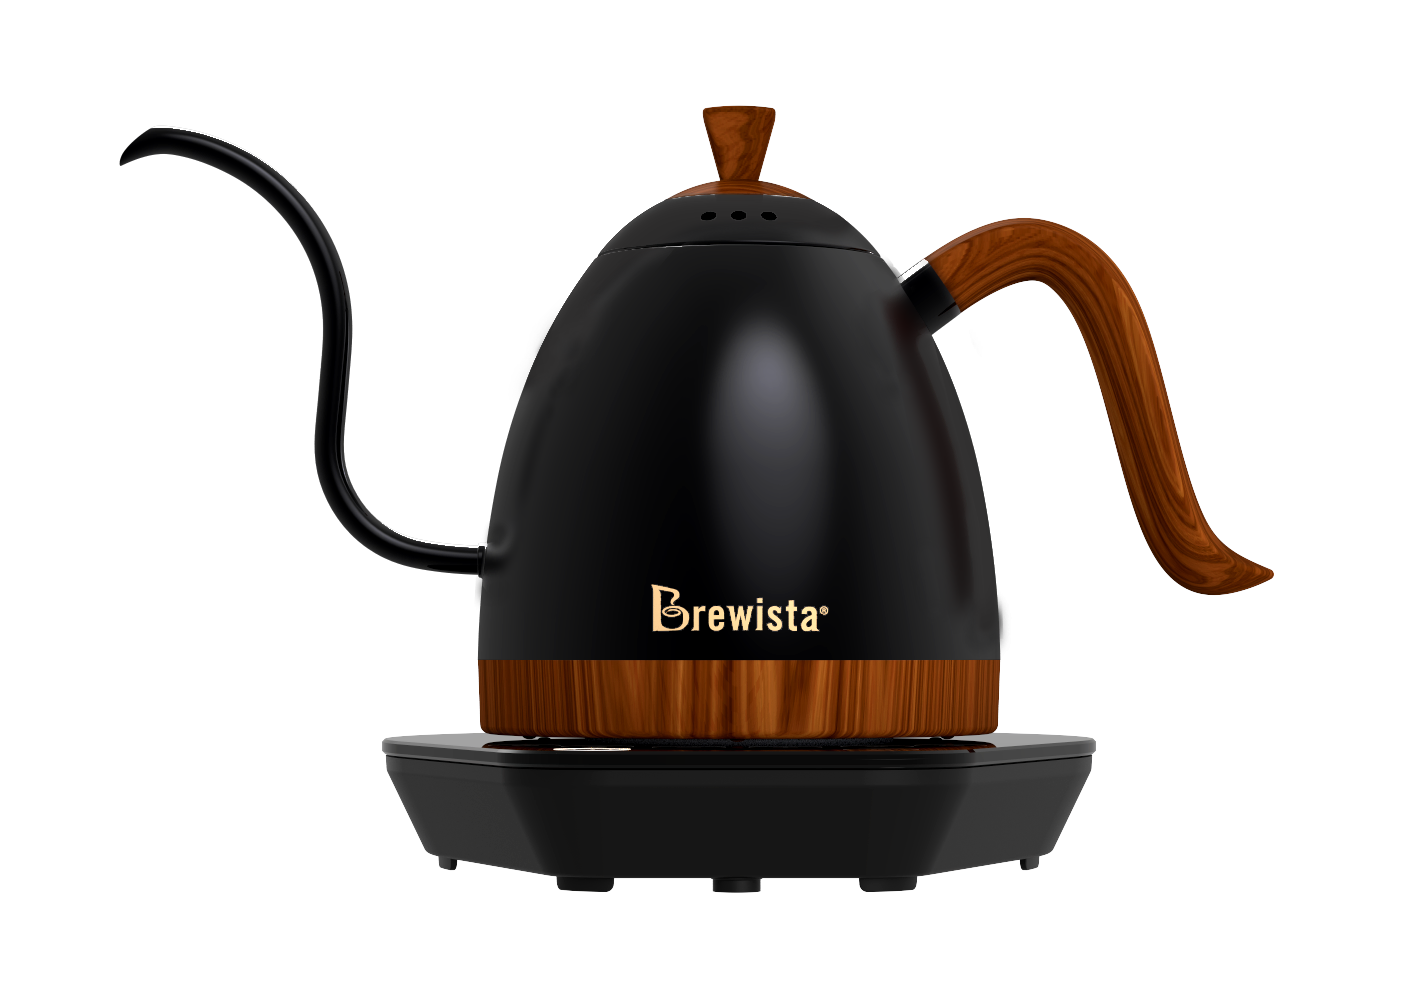 Brewista Artisan Variable Temperature Gooseneck Kettle 600ml-Black with Wood Handle